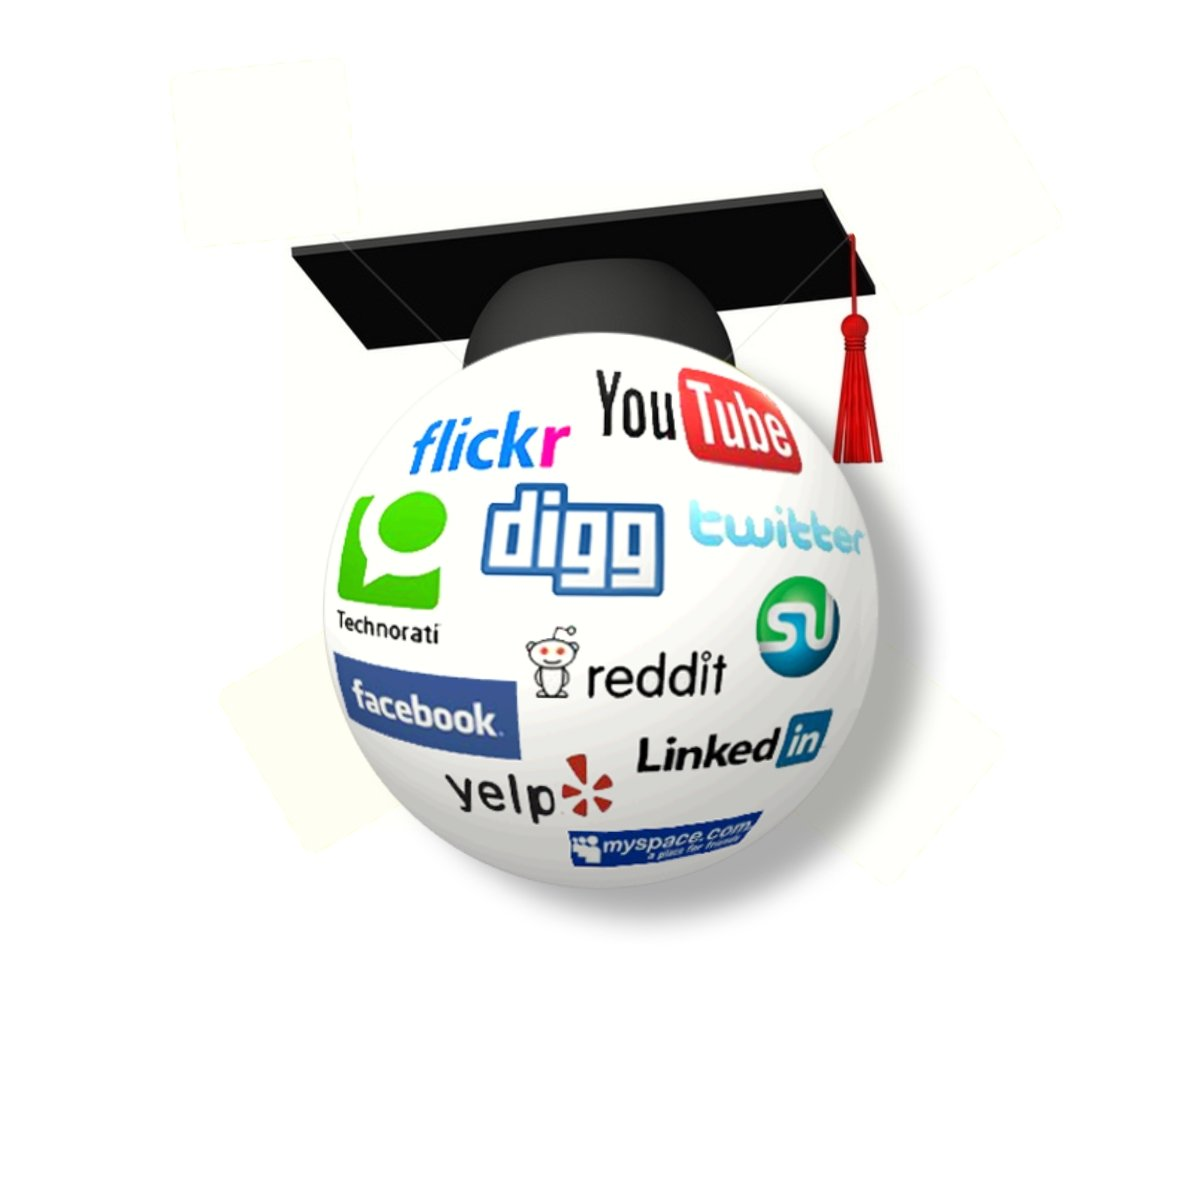 Five Ways to Use Social Media in Education